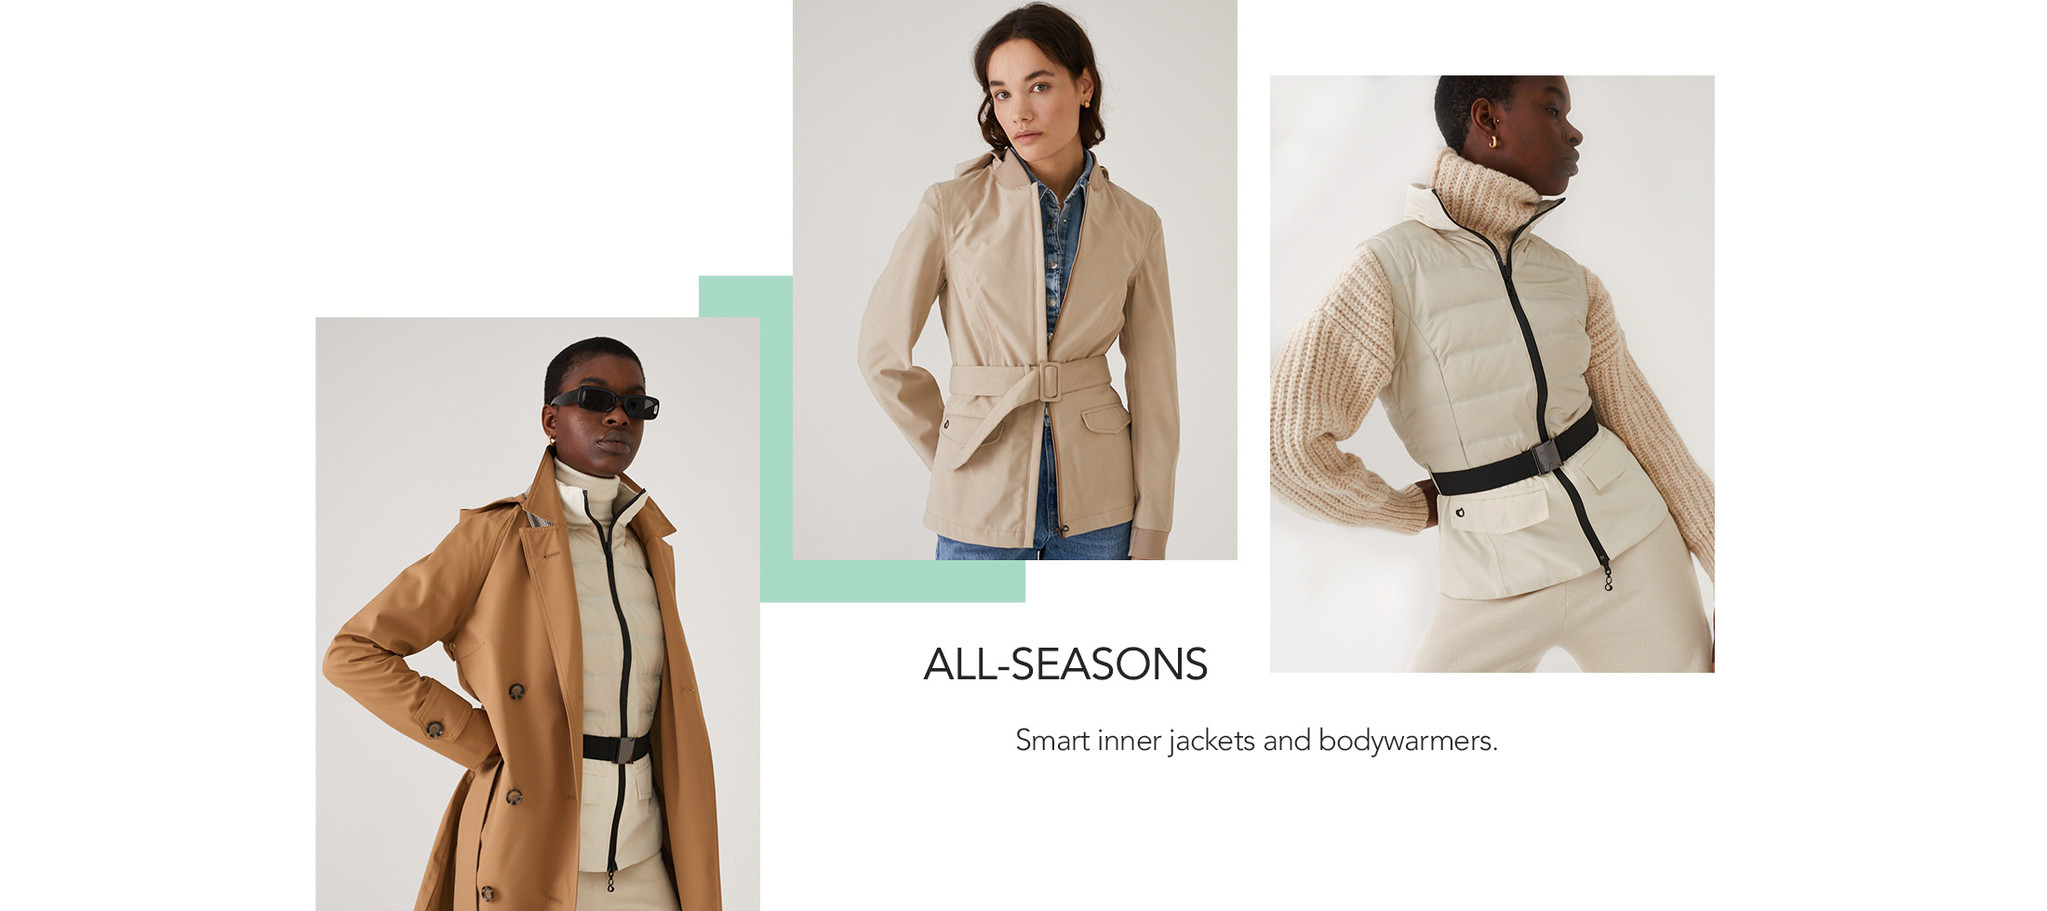 PHILOSOPHY BANNER RAIN COUTURE AMSTERDAM ALL-SEASONS ALL-WEATHER